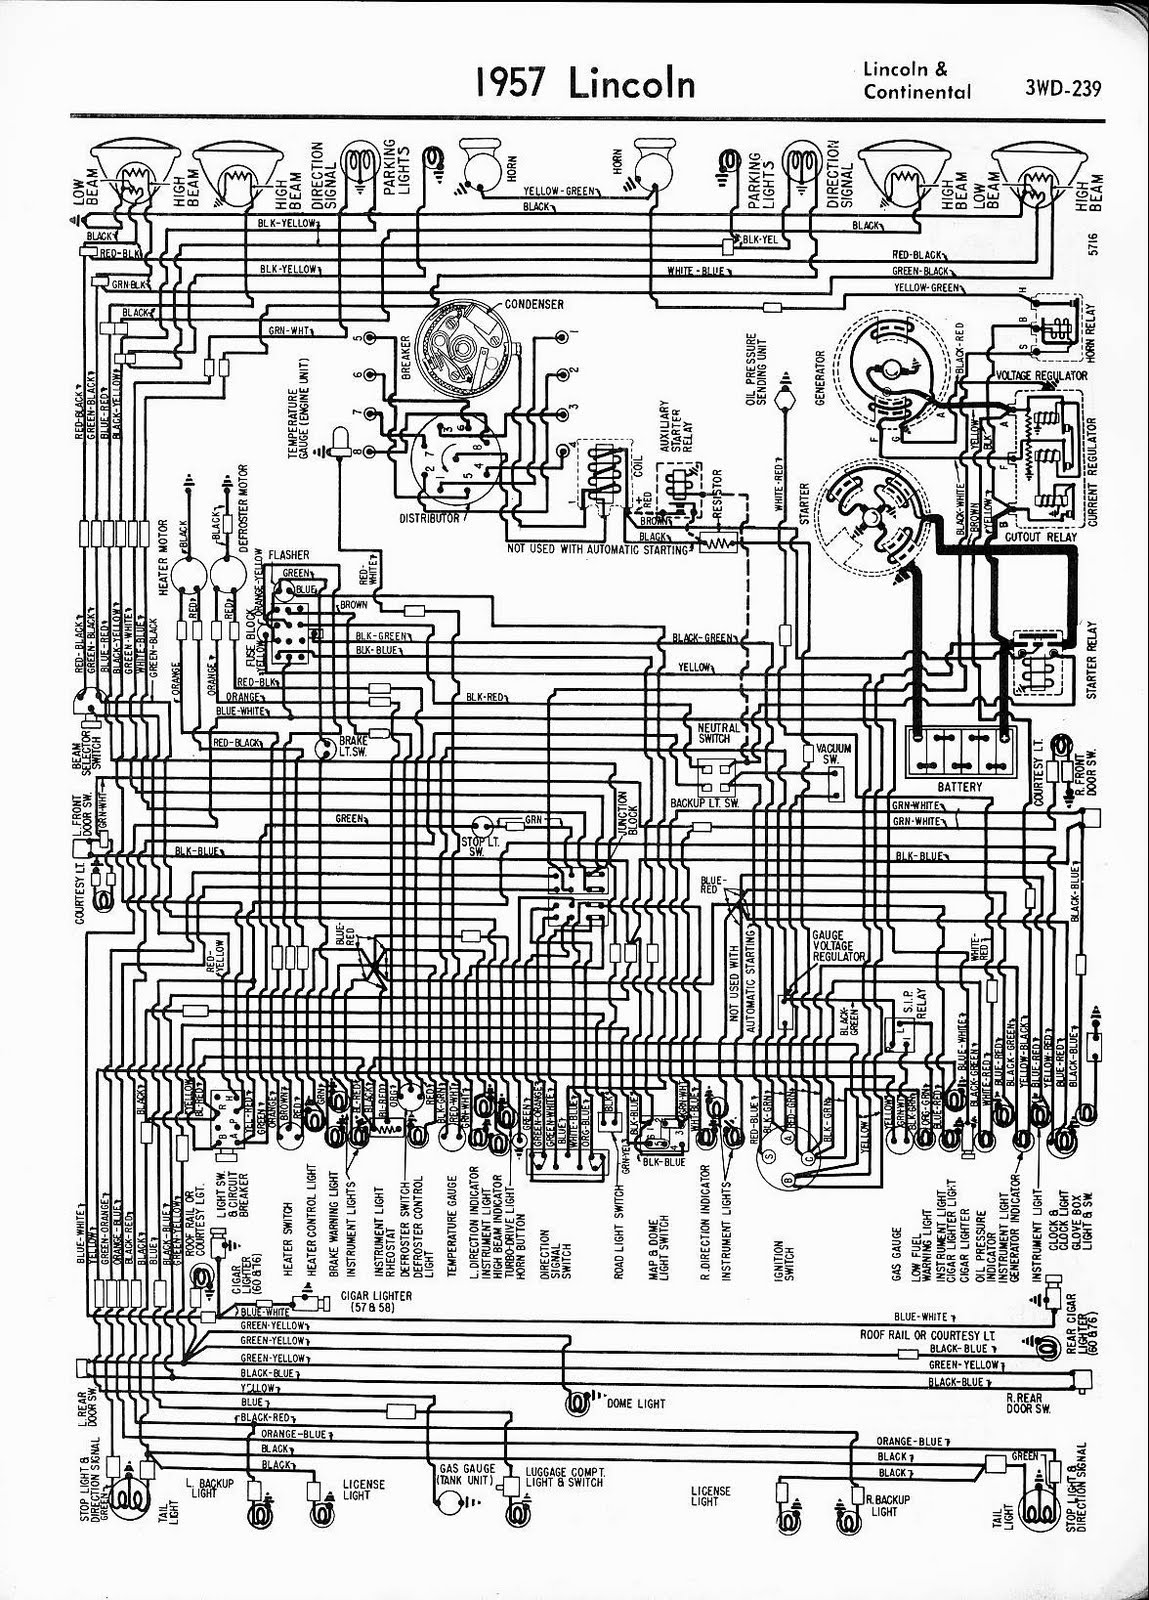 DIAGRAM] 1948 Lincoln Continental Wiring Diagrams FULL Version HD Quality Wiring  Diagrams - MAGICDIAGRAMS.AMMEDIOCASA.ITmagicdiagrams.ammediocasa.it